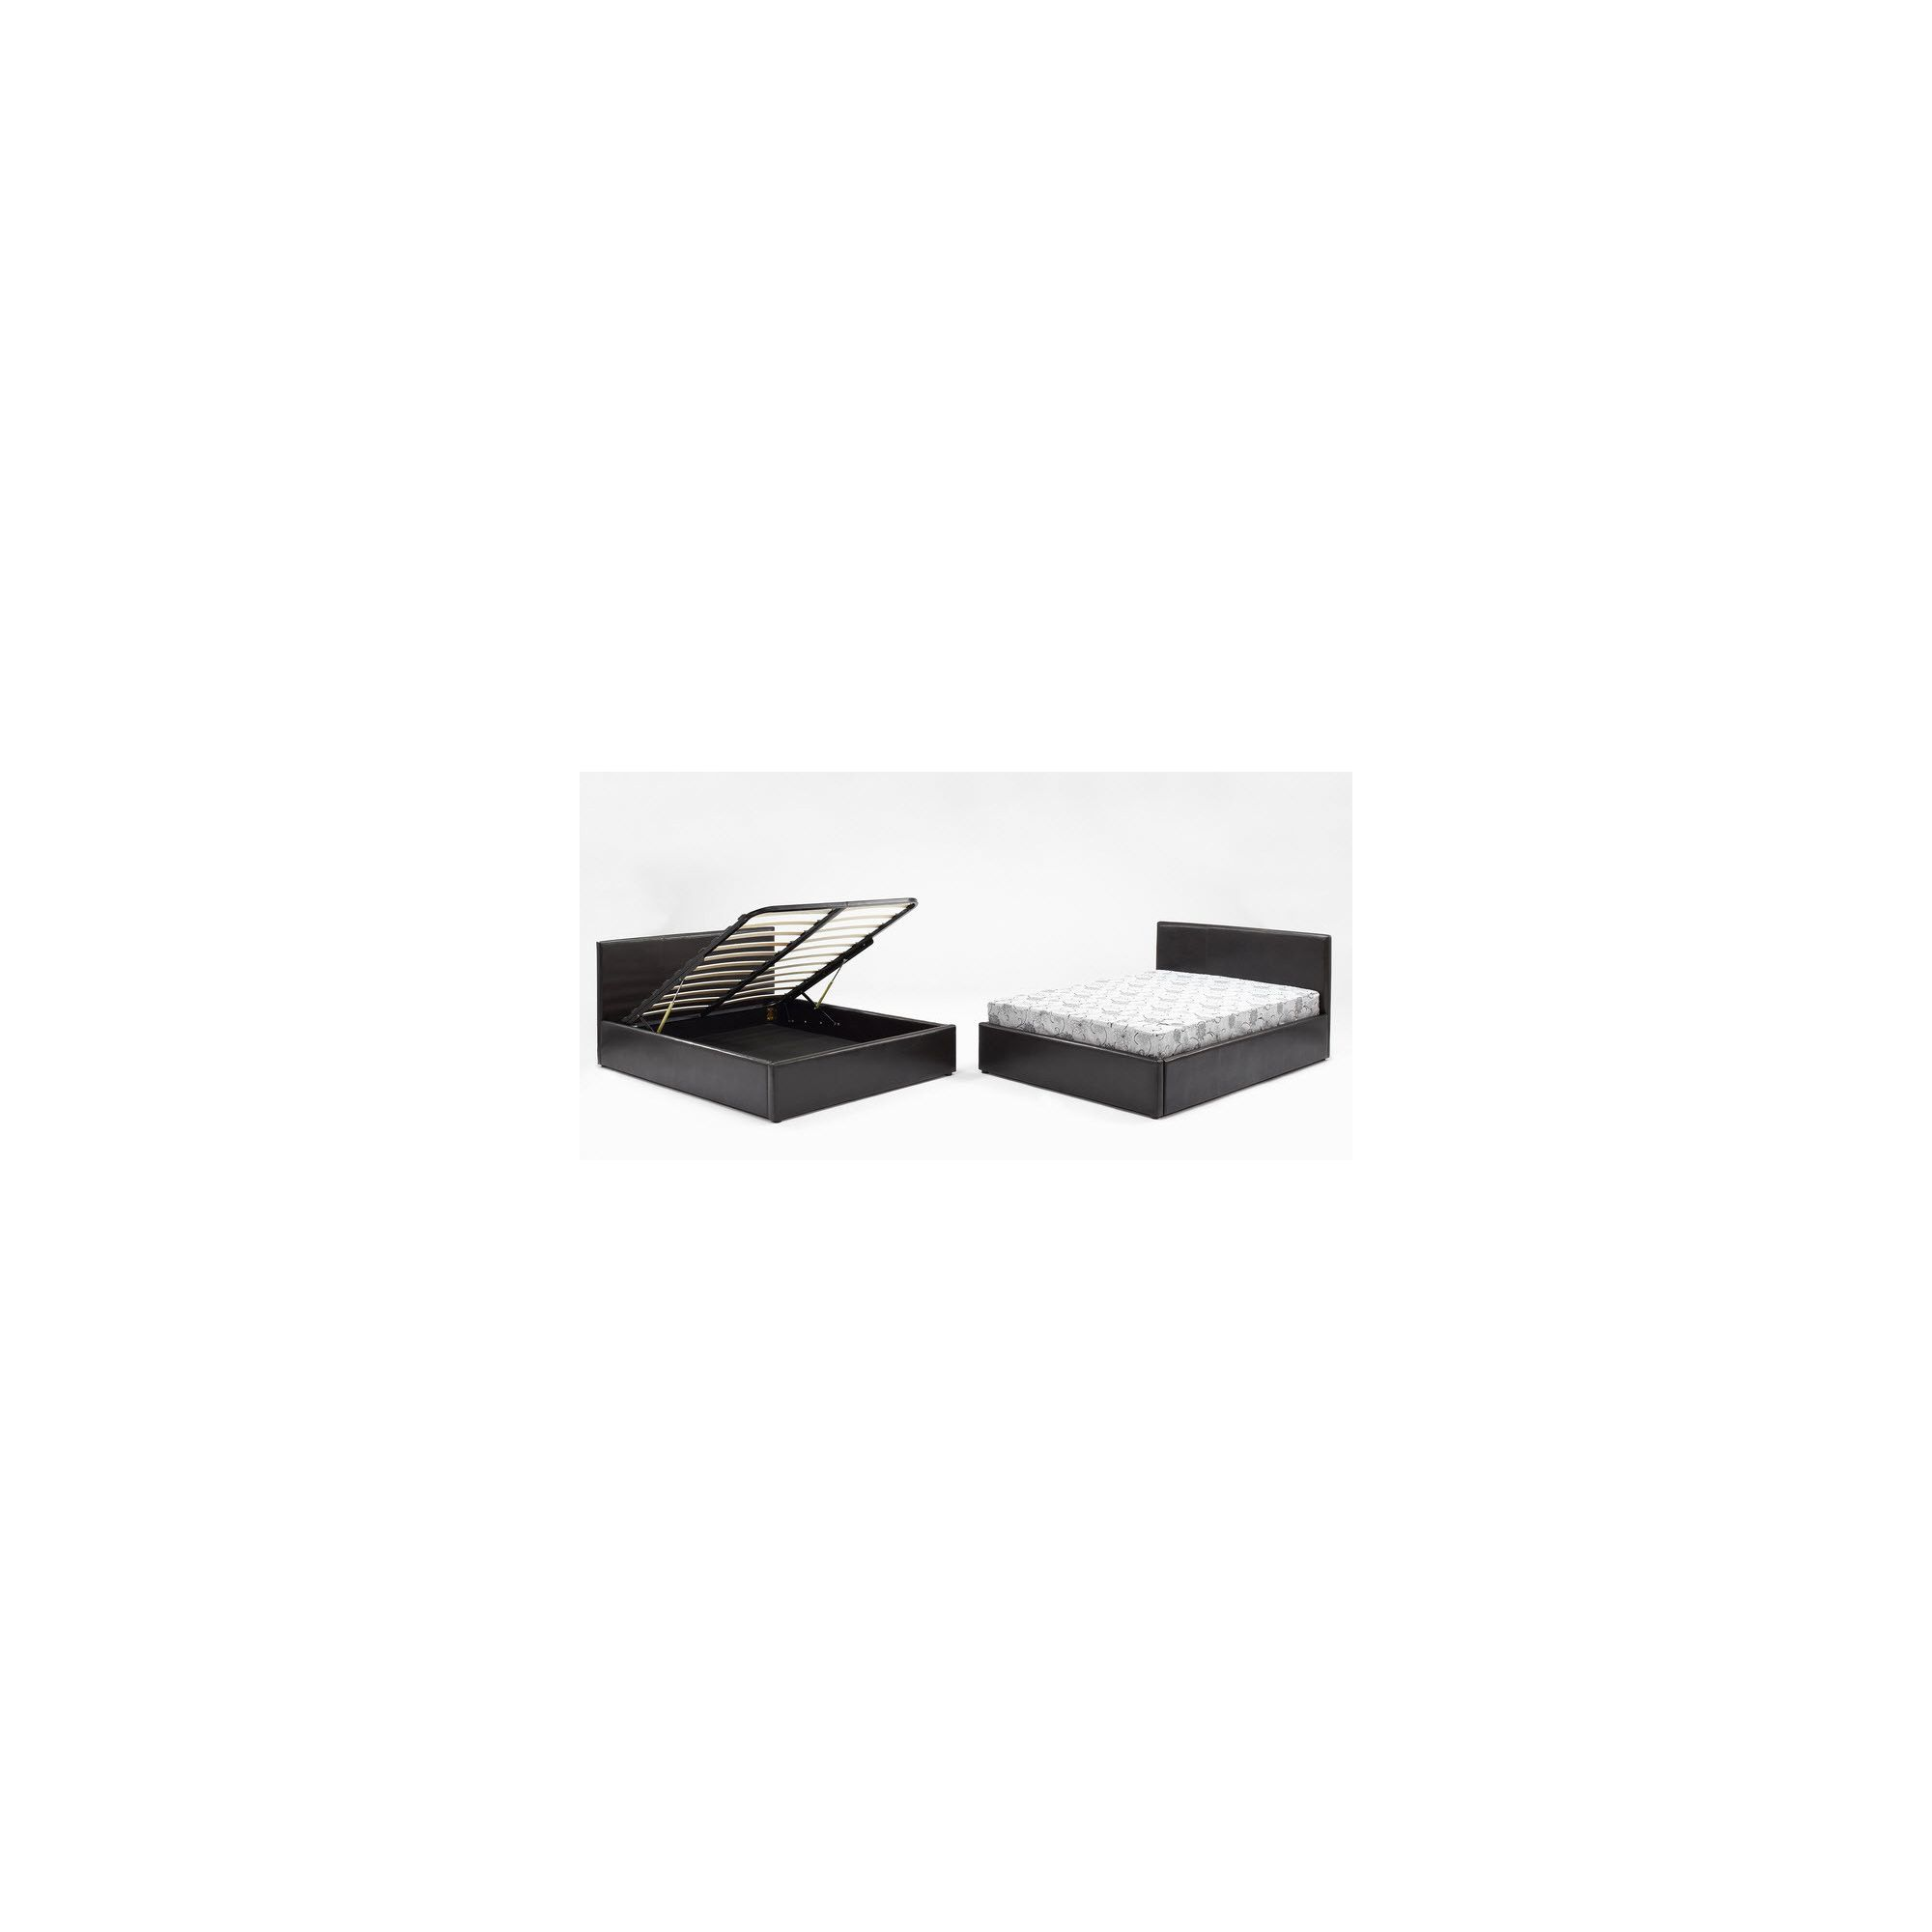 Interiors 2 suit Milan Storage Bedframe - Black - Small Double at Tescos Direct